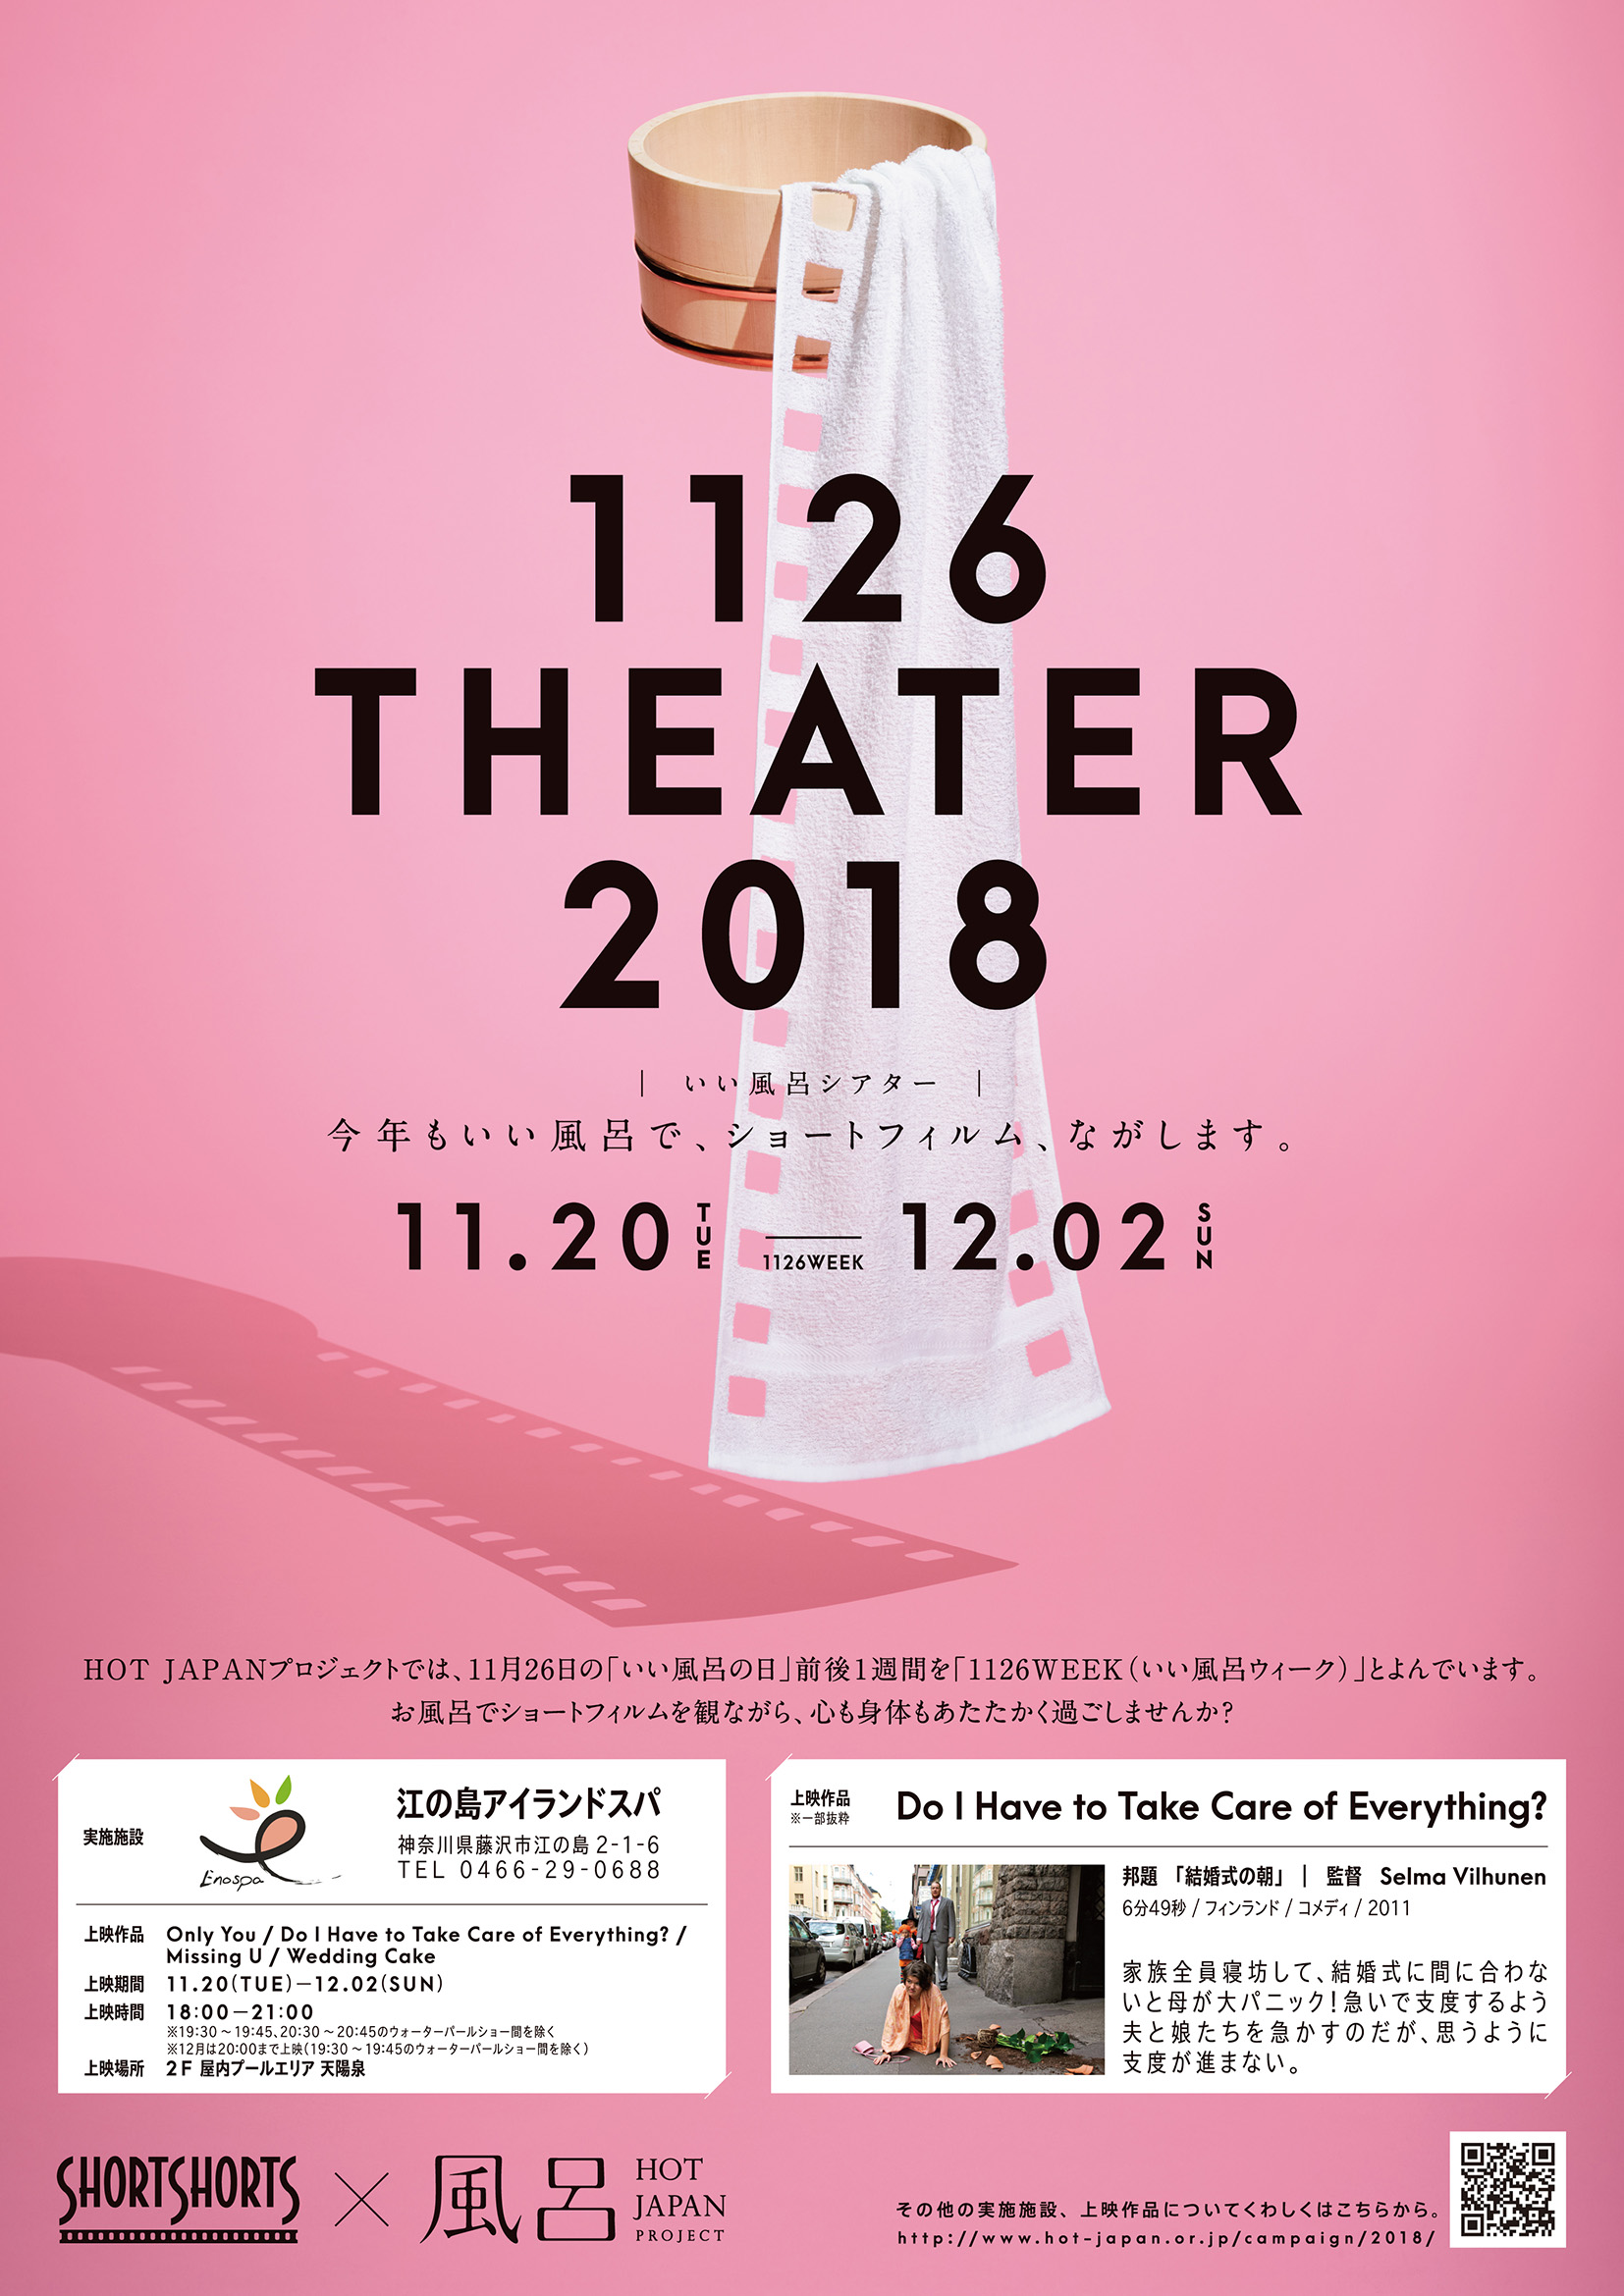 1126THEATER_hot-japan